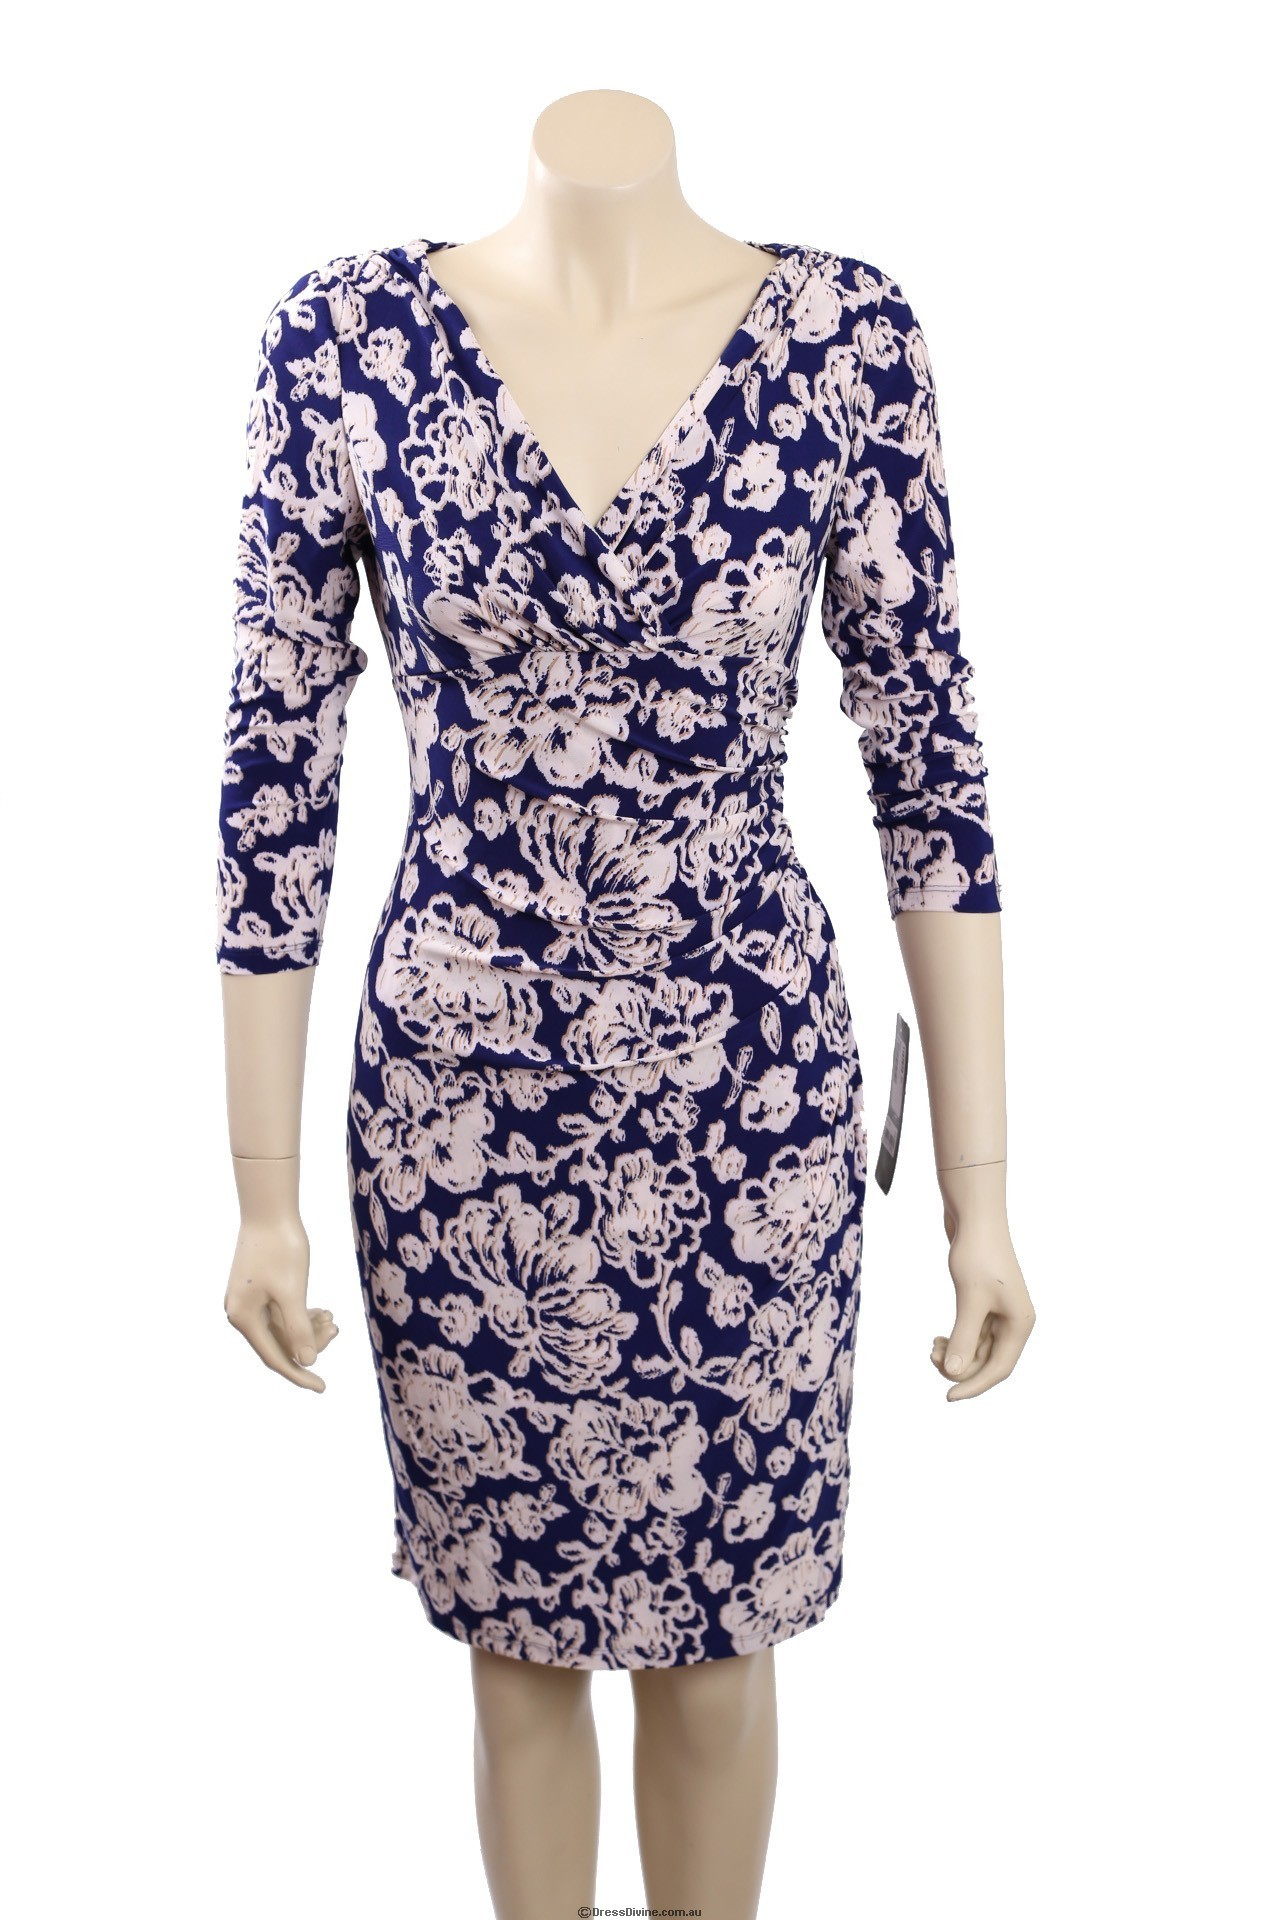 ralph lauren size 10 purple floral dress